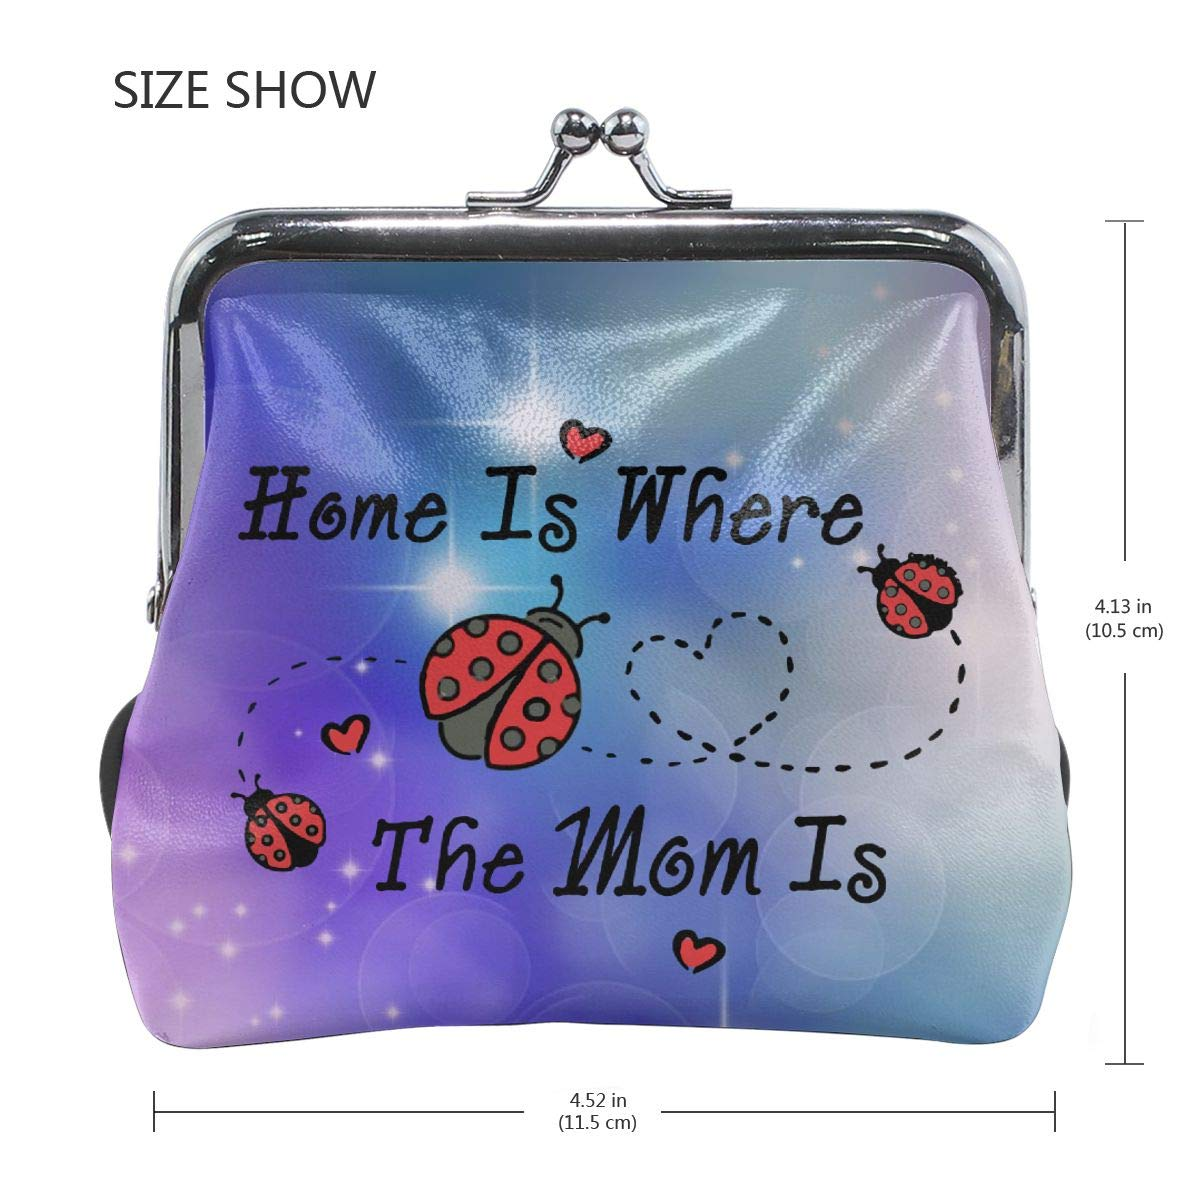 Home Is Where The Mom Is Cute Buckle Coin Purses Buckle Buckle Change Purse Wallets